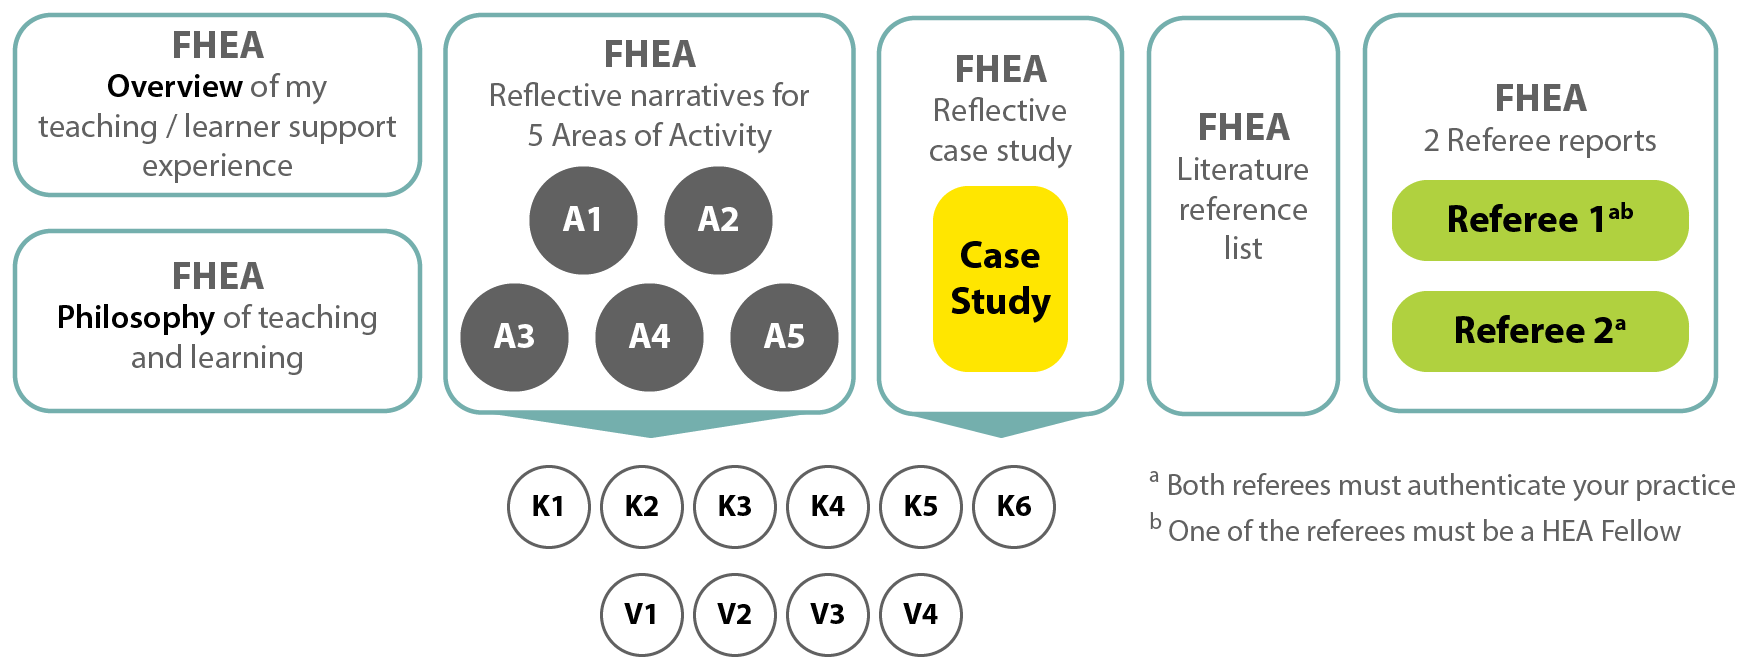 Checklist for FHEA. Overview of my teaching/learner support experience. Philosophy of teaching and learning. Reflective narratives for 5 Areas of Activity (A1, A2, A3, A4 and A5): including K1, K2, K3, K4, K5, K6, V1, V2, V3 and V4. Literature reference list. 2 referee reports (both referees must authenticate your practice. One of the referees must be a HEA Fellow).